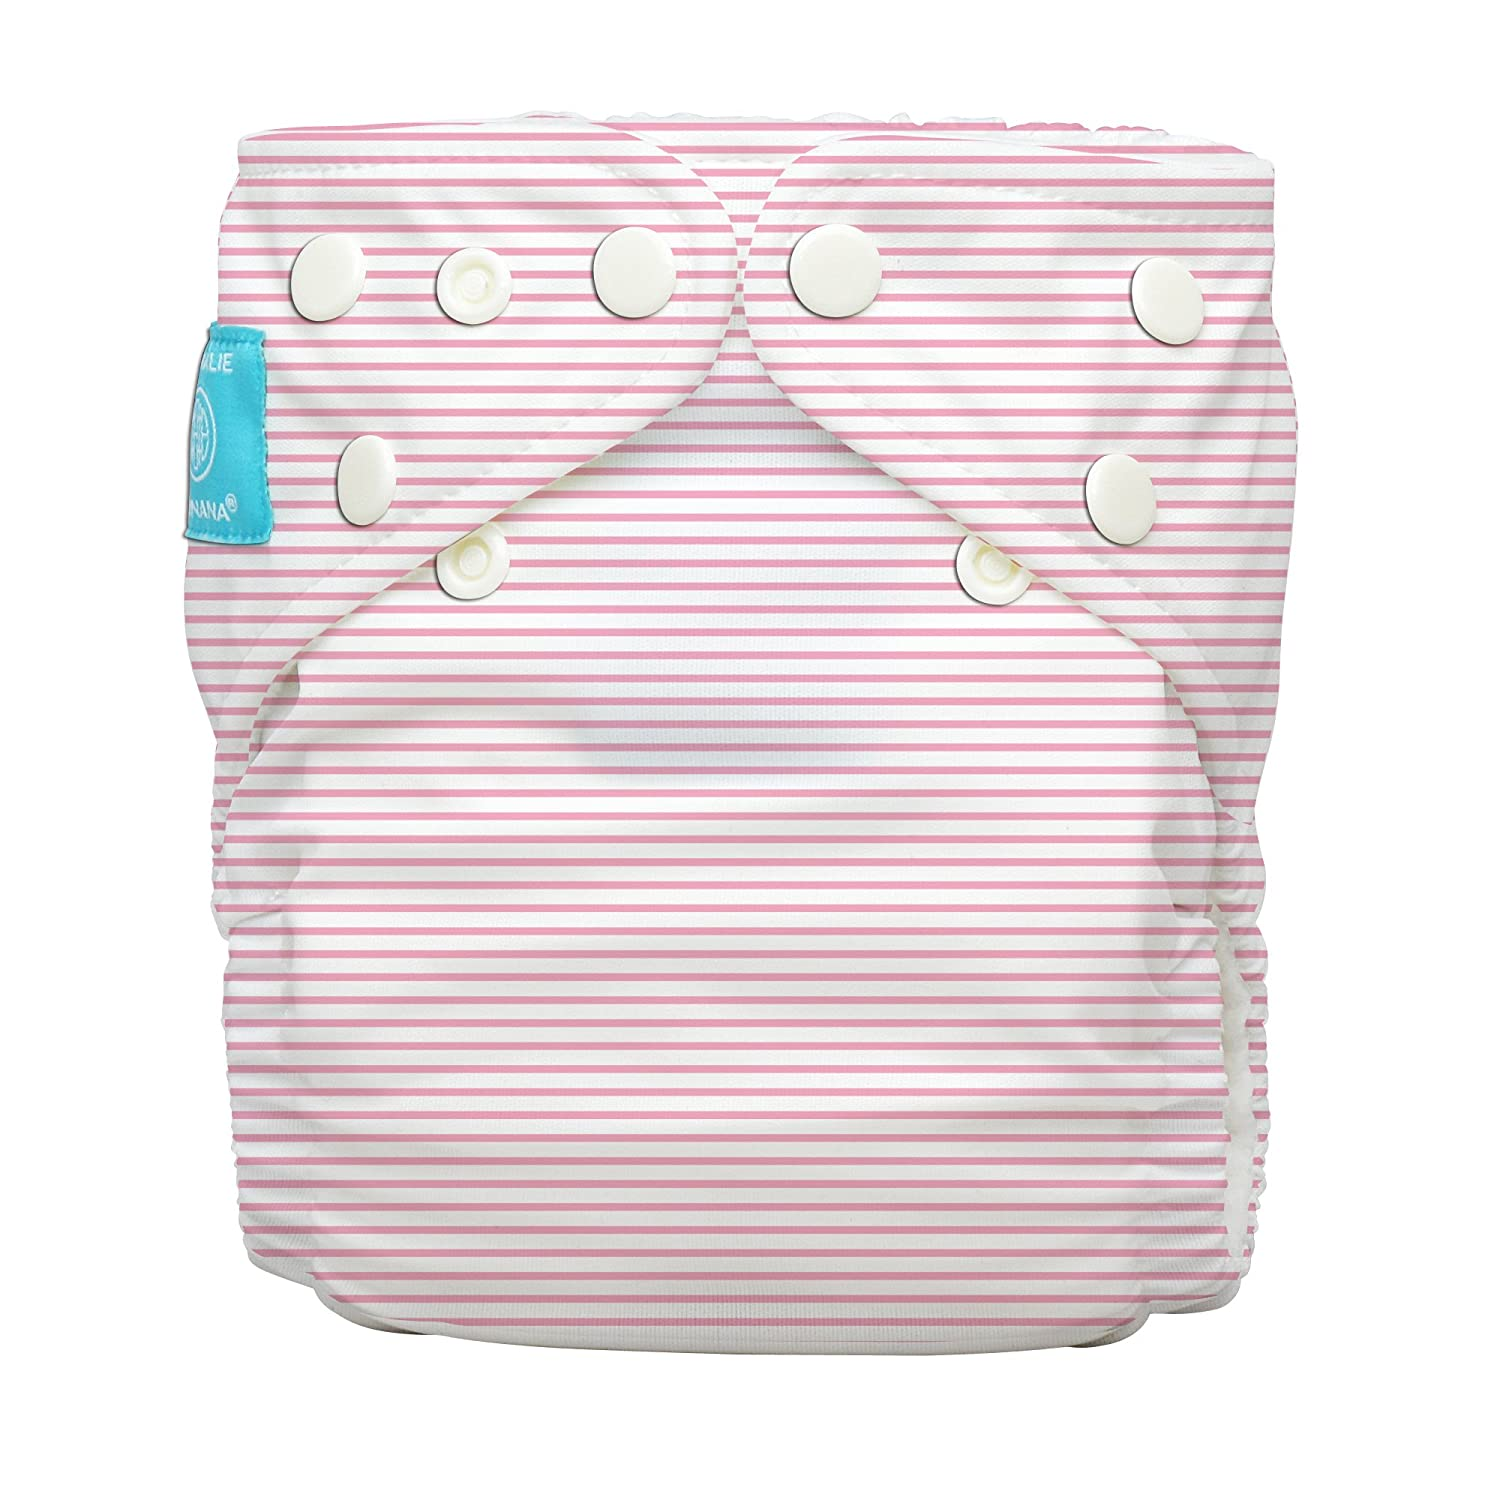 Charlie Banana Diaper 2 Inserts Pencil Stripes Pink One Size Hybrid AIO Winc Design Limited 888204